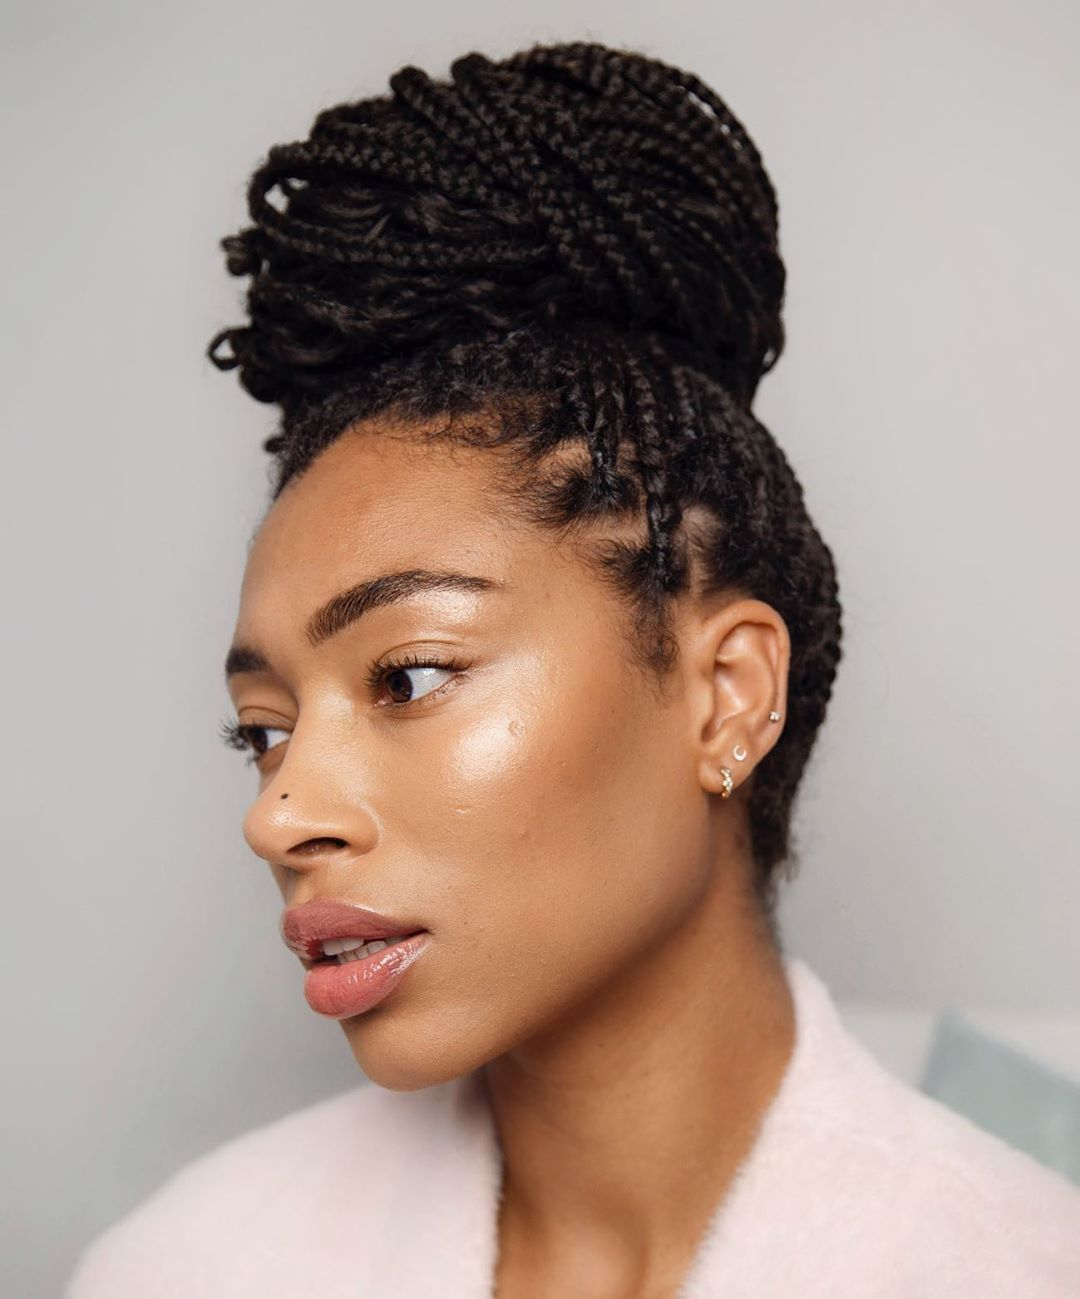 High Bun Hairstyle to Do with Box Braids